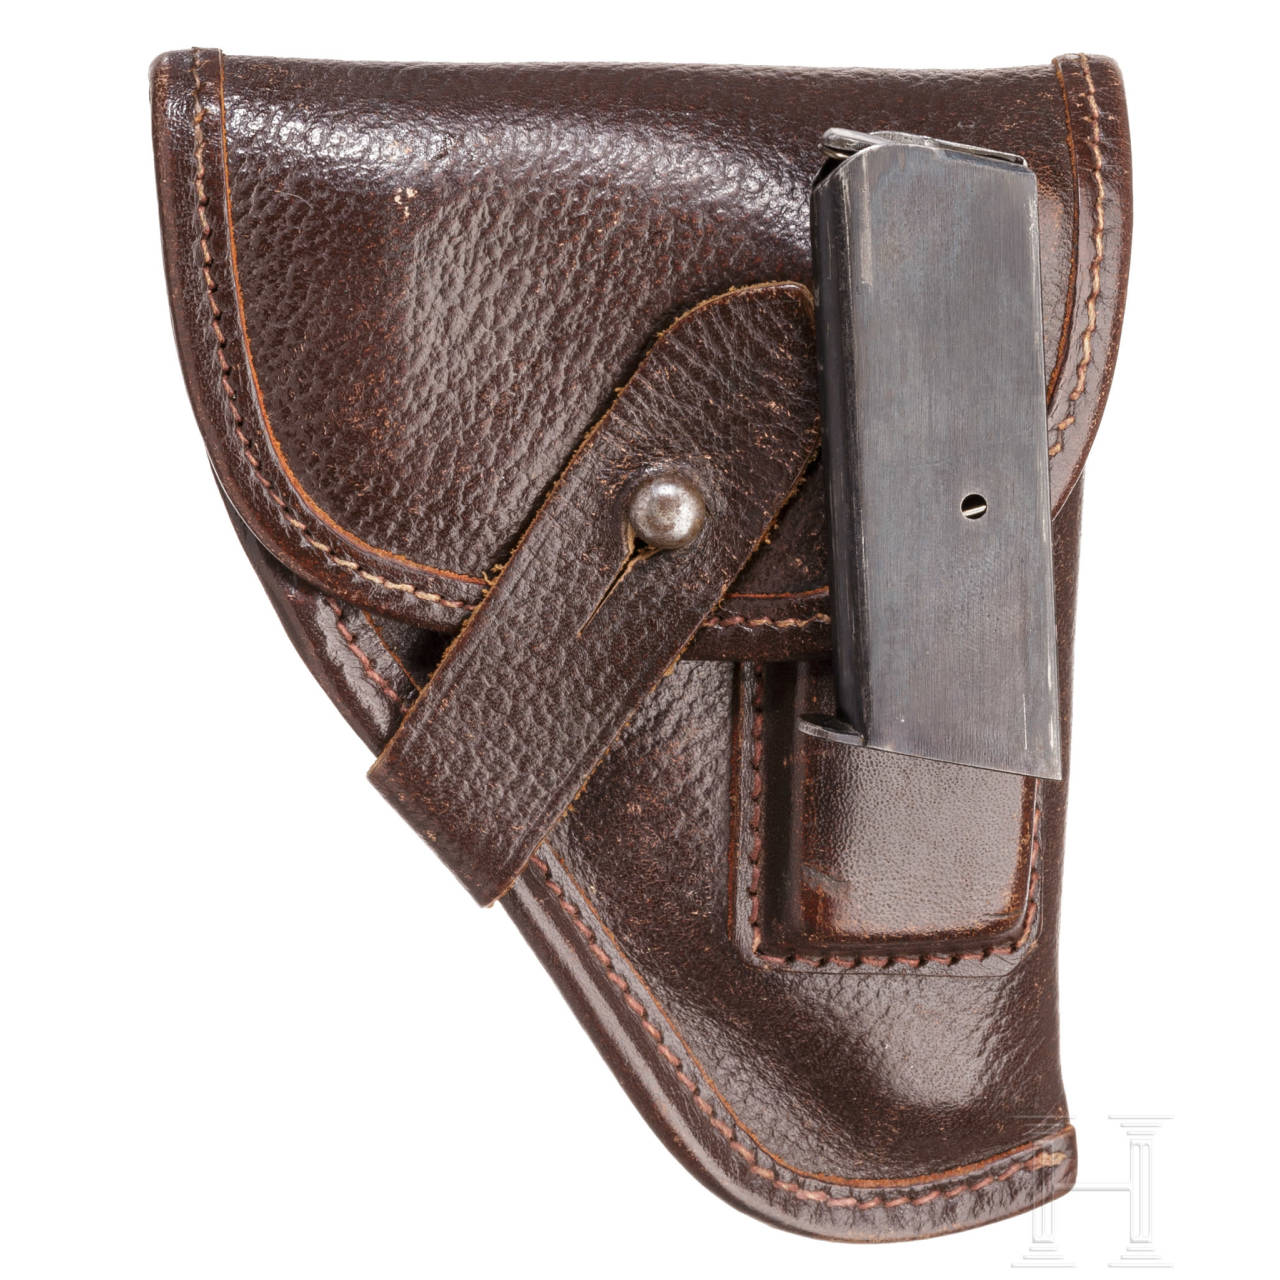 A Stock pocket pistol with holster